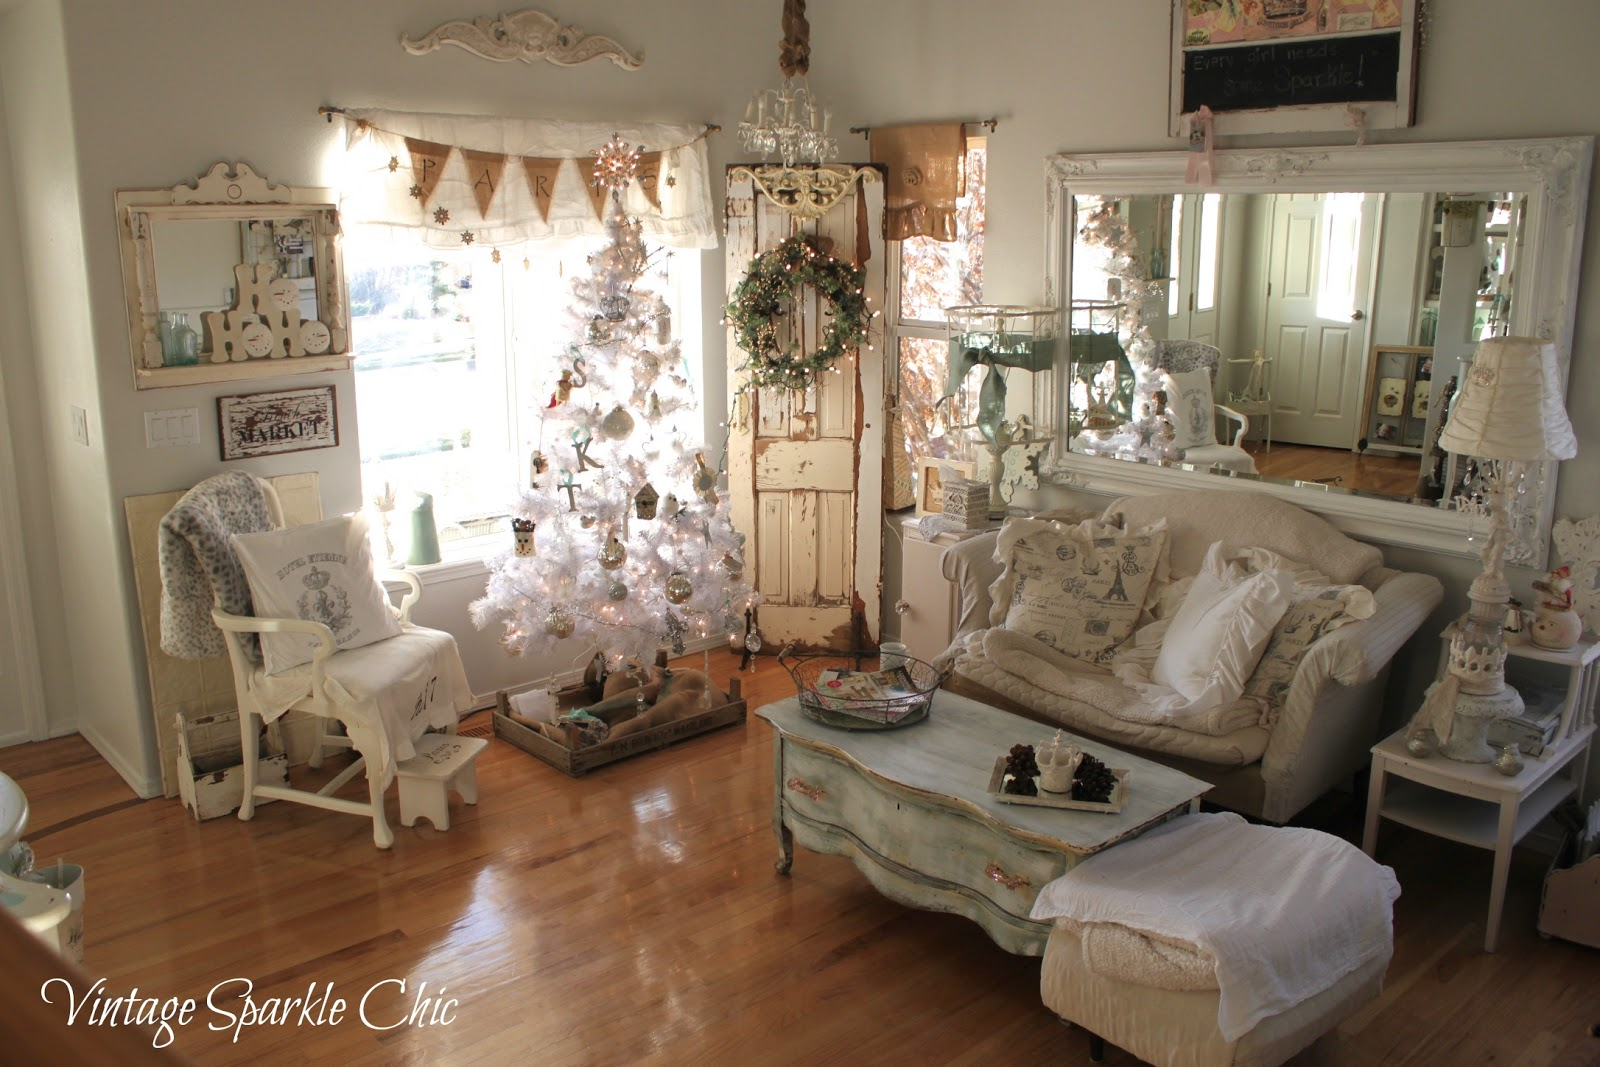 vintage sparkle chic french shabby christmas decorations. Black Bedroom Furniture Sets. Home Design Ideas